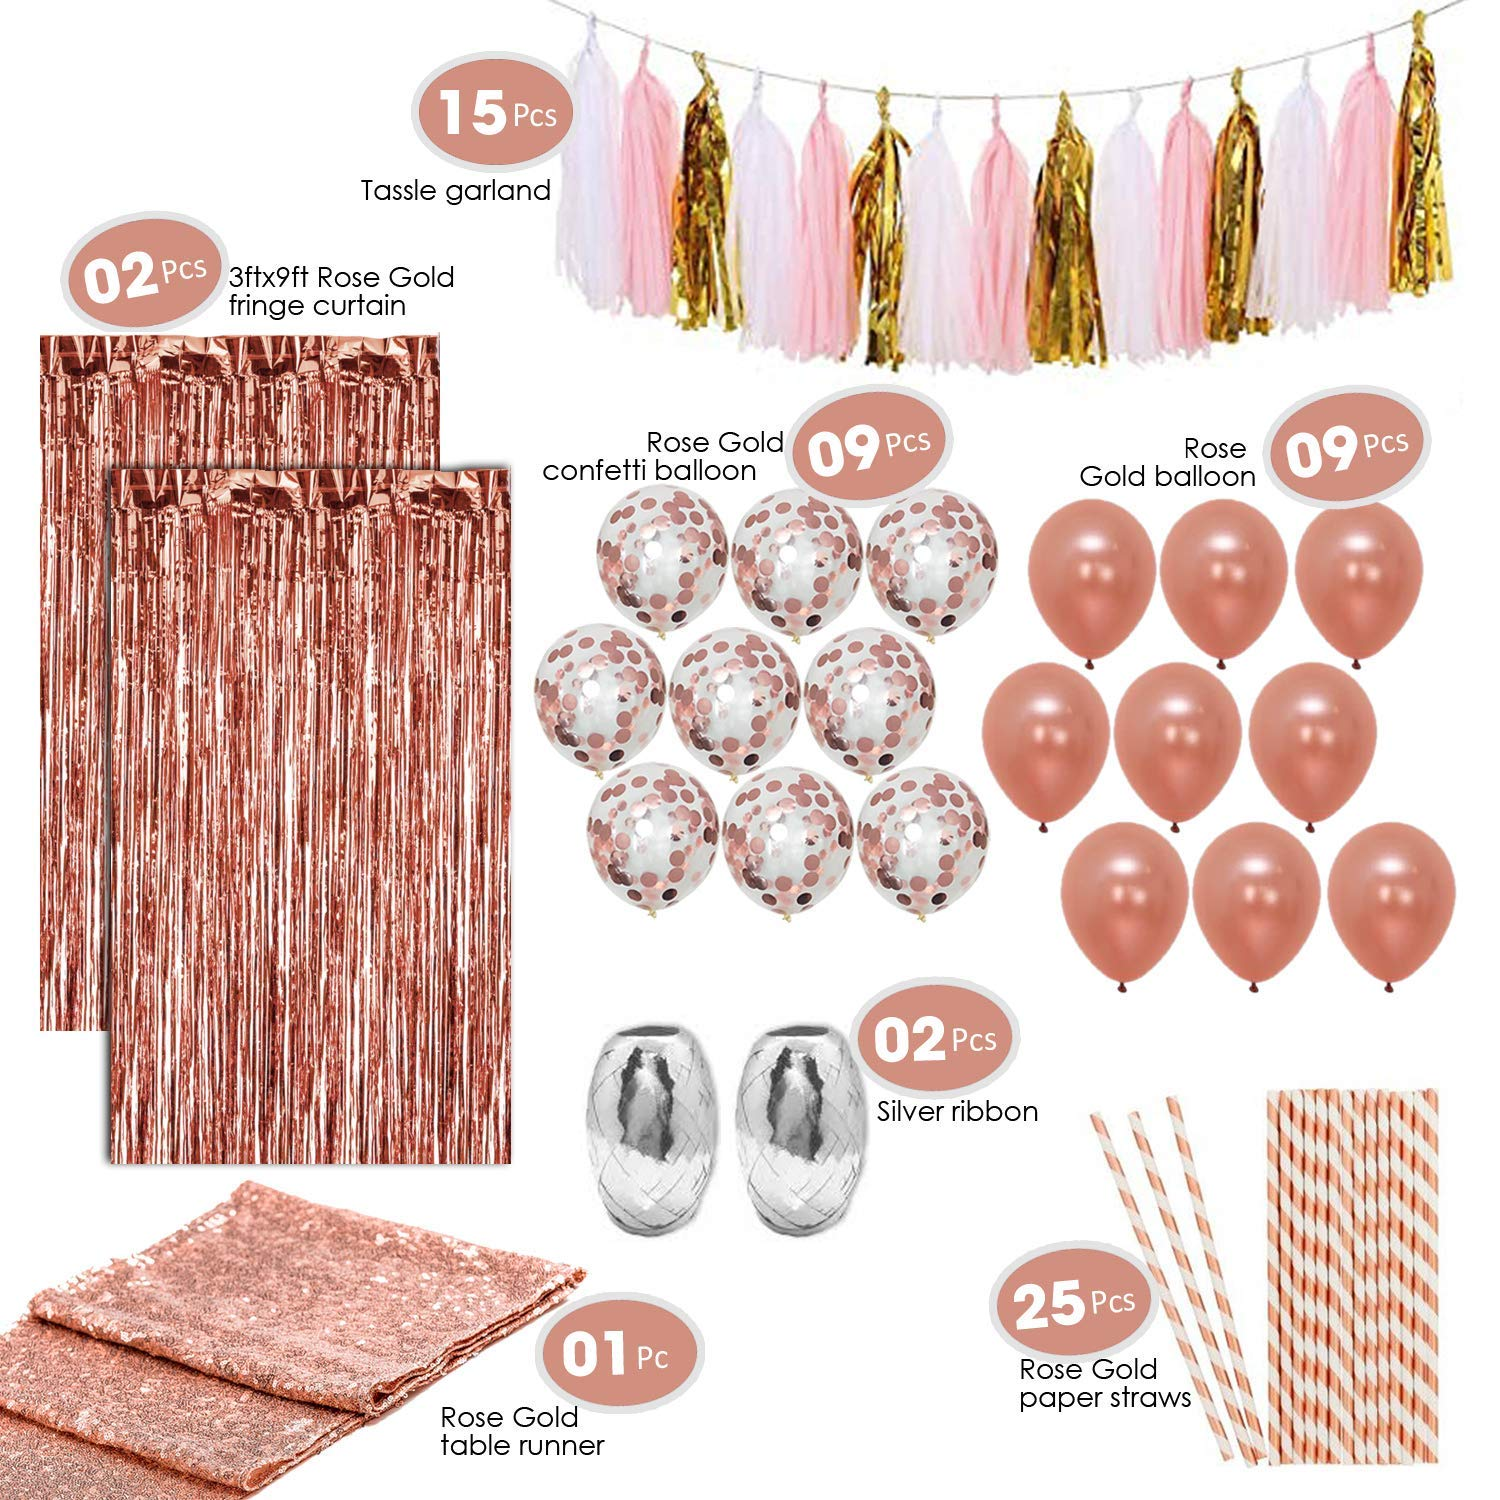 Artunique 63pc Rose Gold Party Decorations Kit   Rose Gold Latex and Confetti Balloons (18)   Sequin Table Runner (1)   Fringe Curtain (2)   Ribbon (2)   Paper Straws (25)   Tassle Garland (15) by Artunique